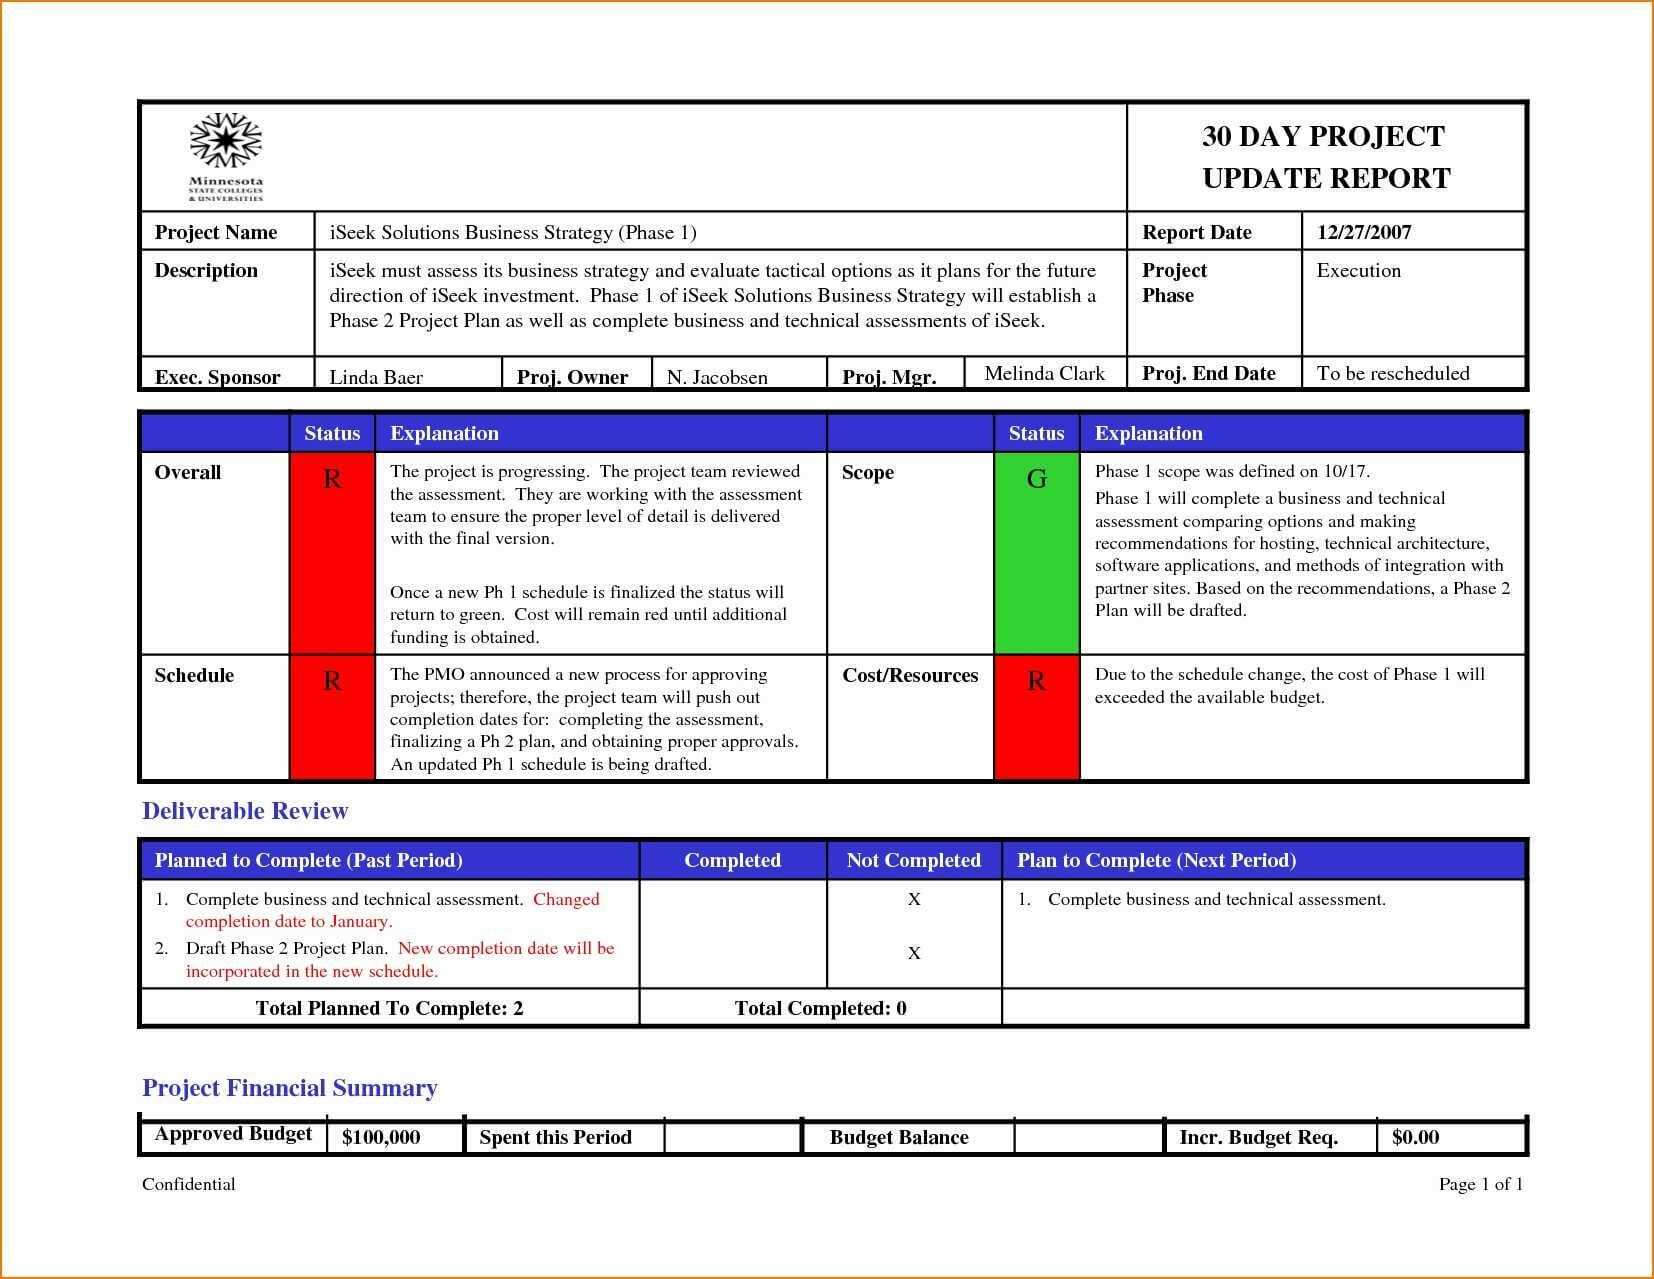 Project Management Report Template Status Ideas Team Excel for Weekly Status Report Template Excel